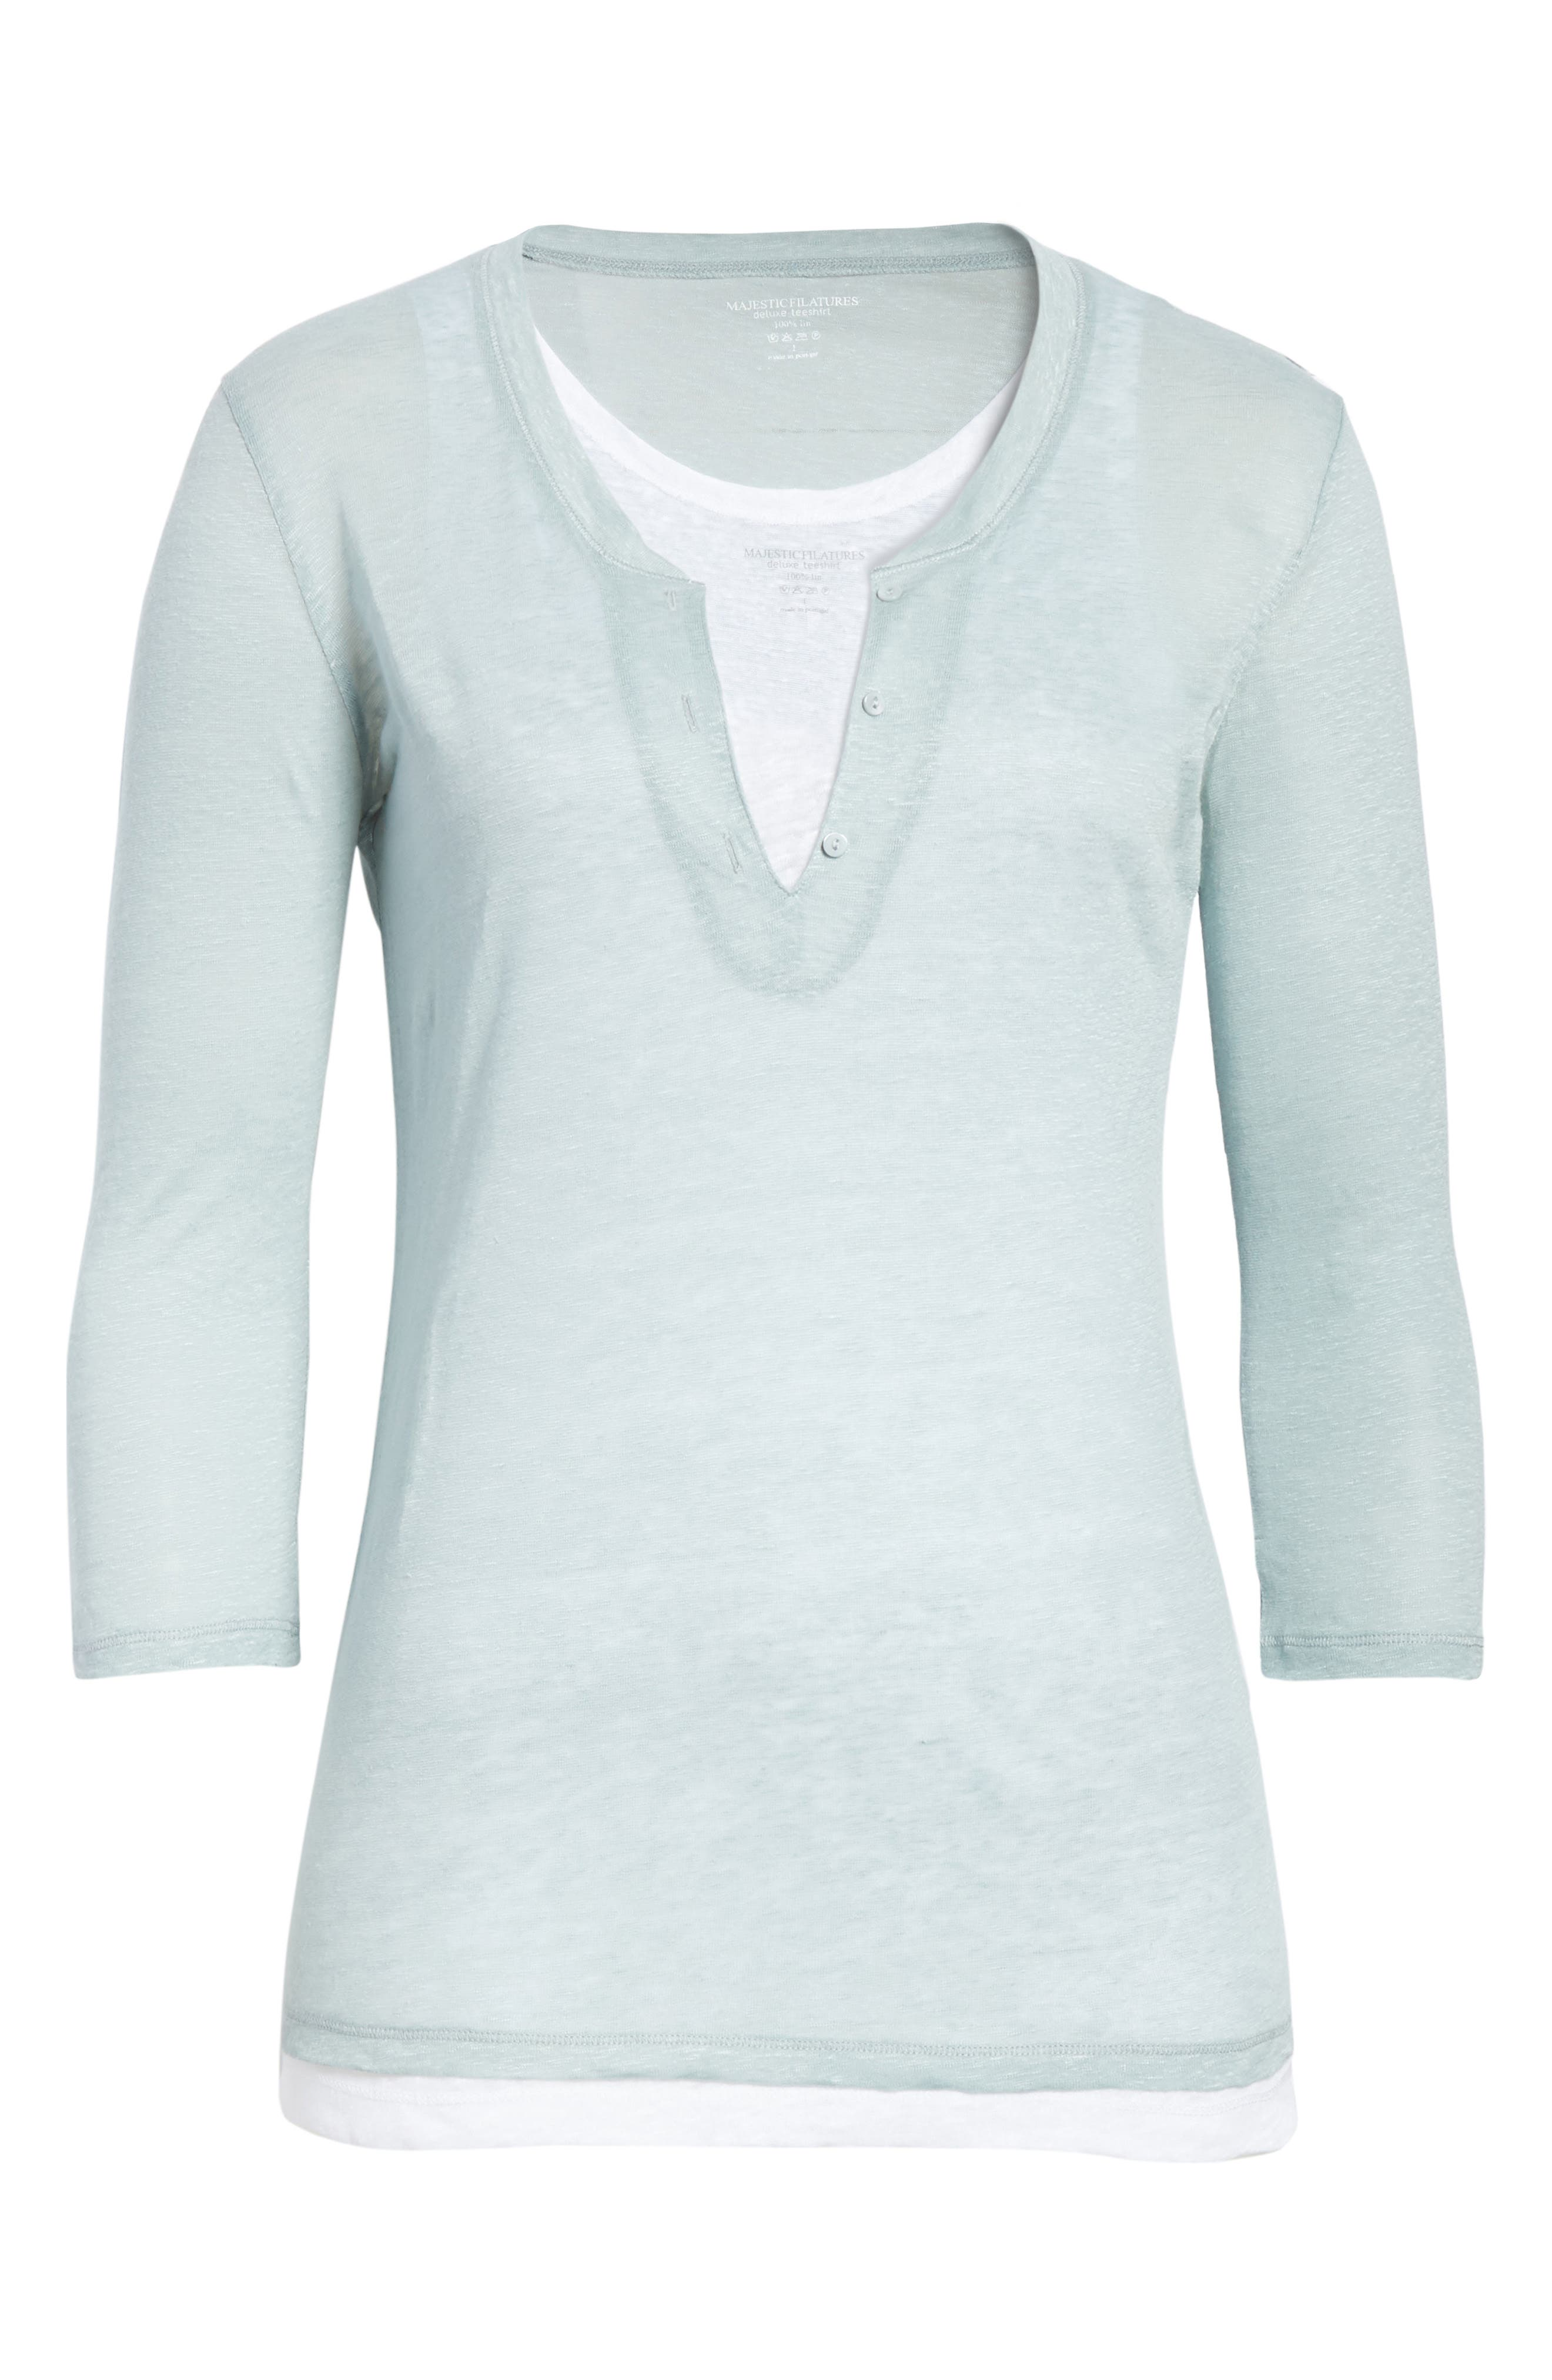 Double Layer Henley Top,                             Alternate thumbnail 6, color,                             ECUME/ BLANC